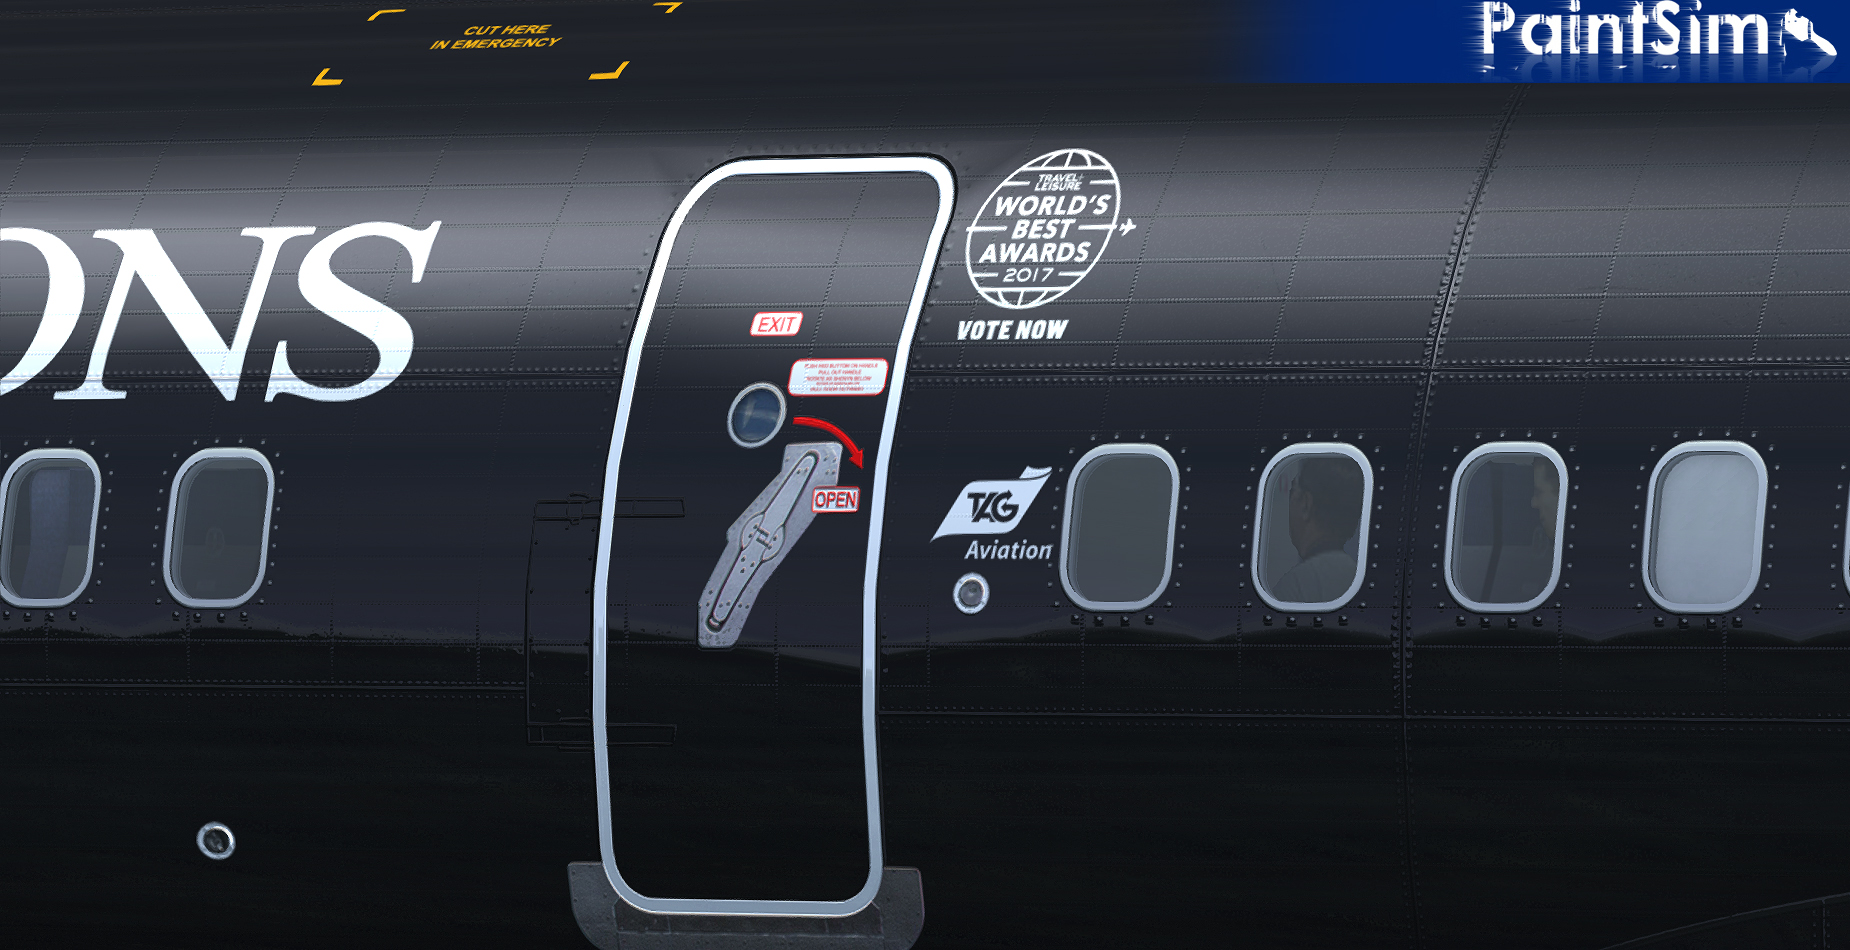 PAINTSIM - UHD TEXTURE PACK 6 FOR CAPTAIN SIM BOEING 757-200 III FSX P3D